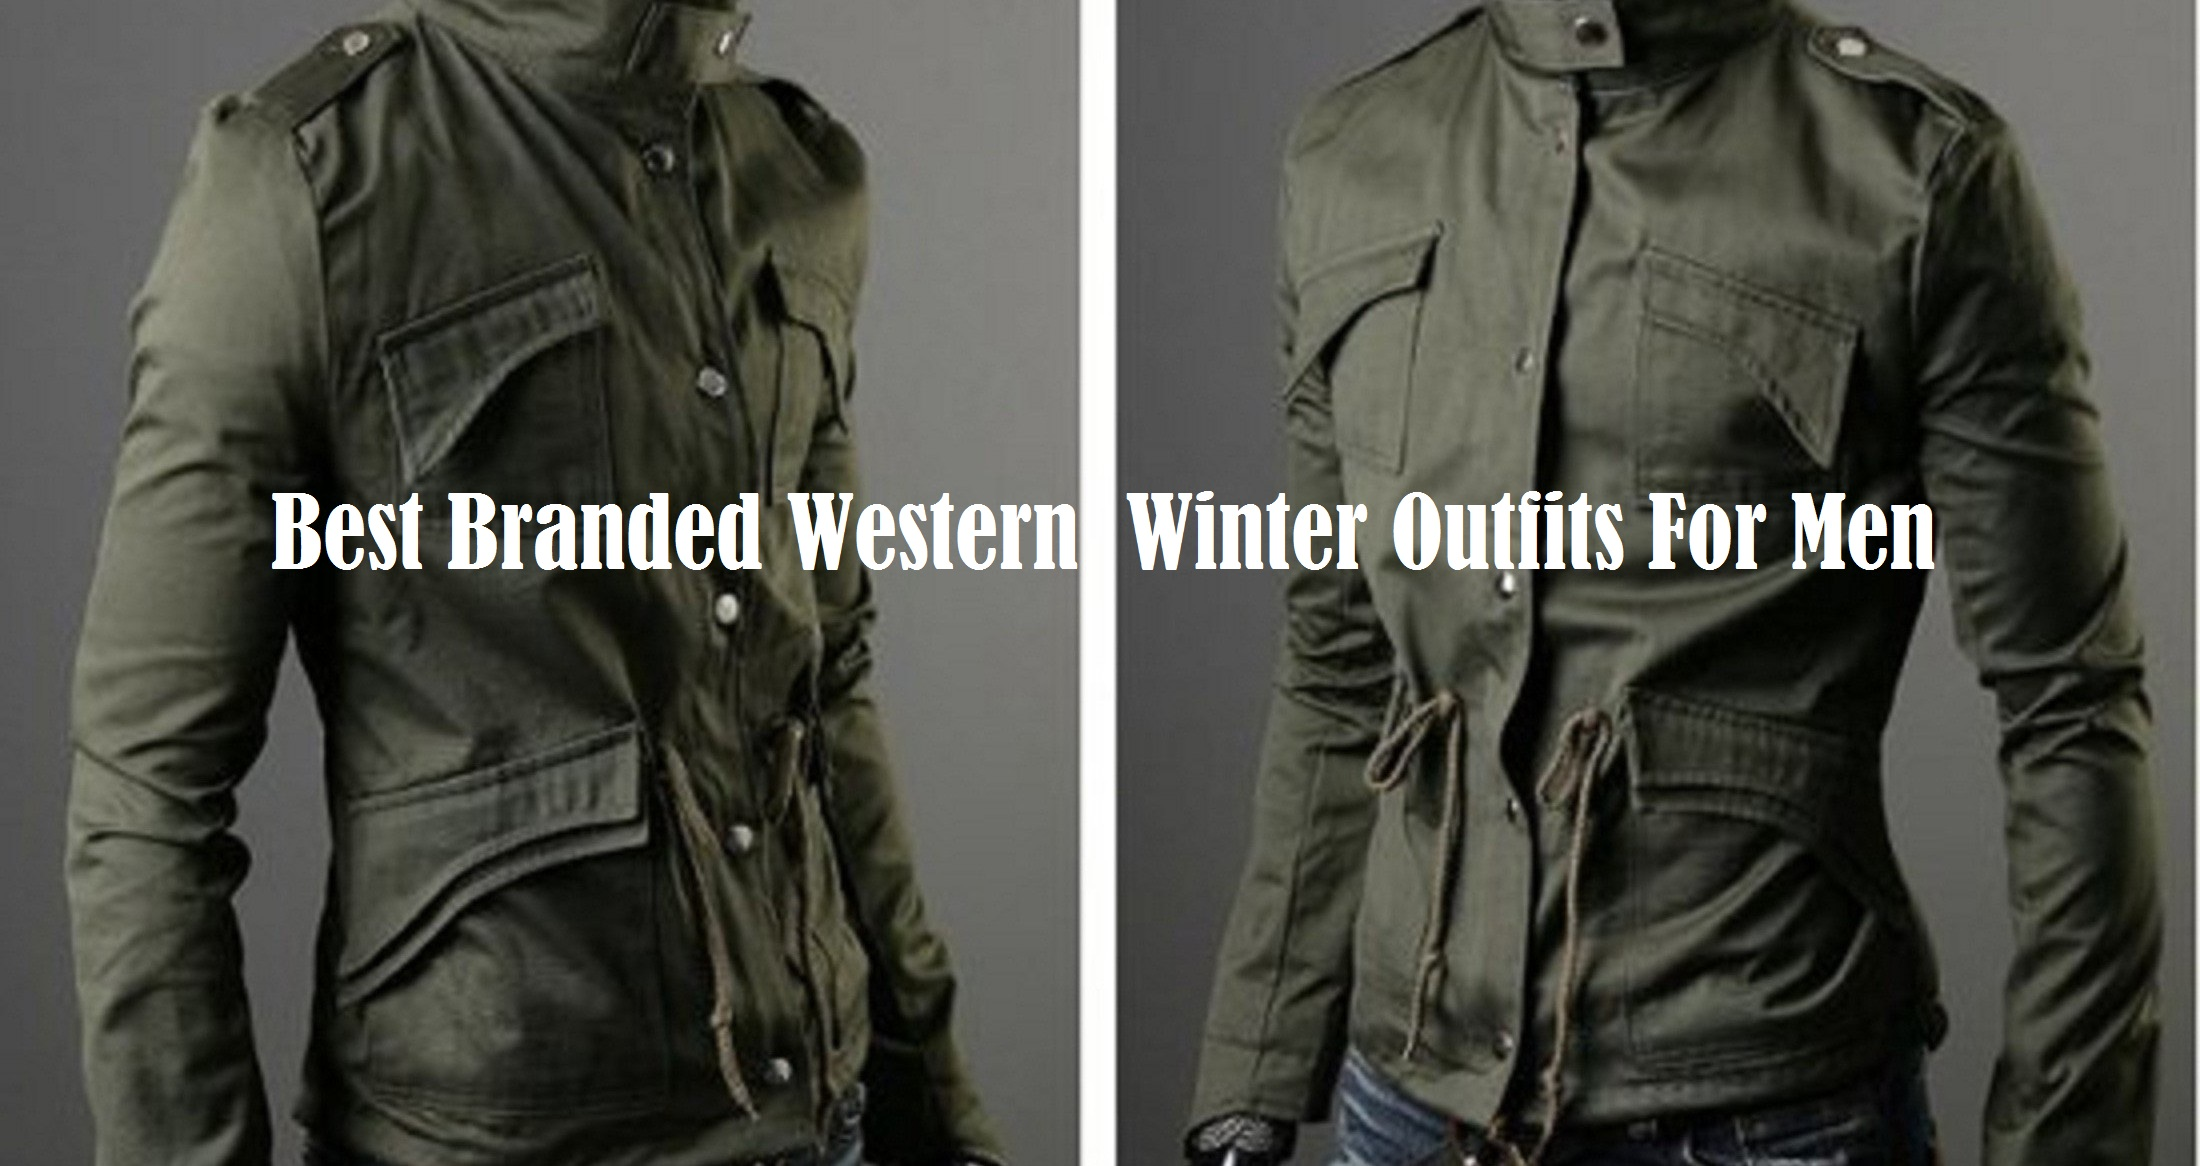 Best Branded Western Winter Outfits For Men